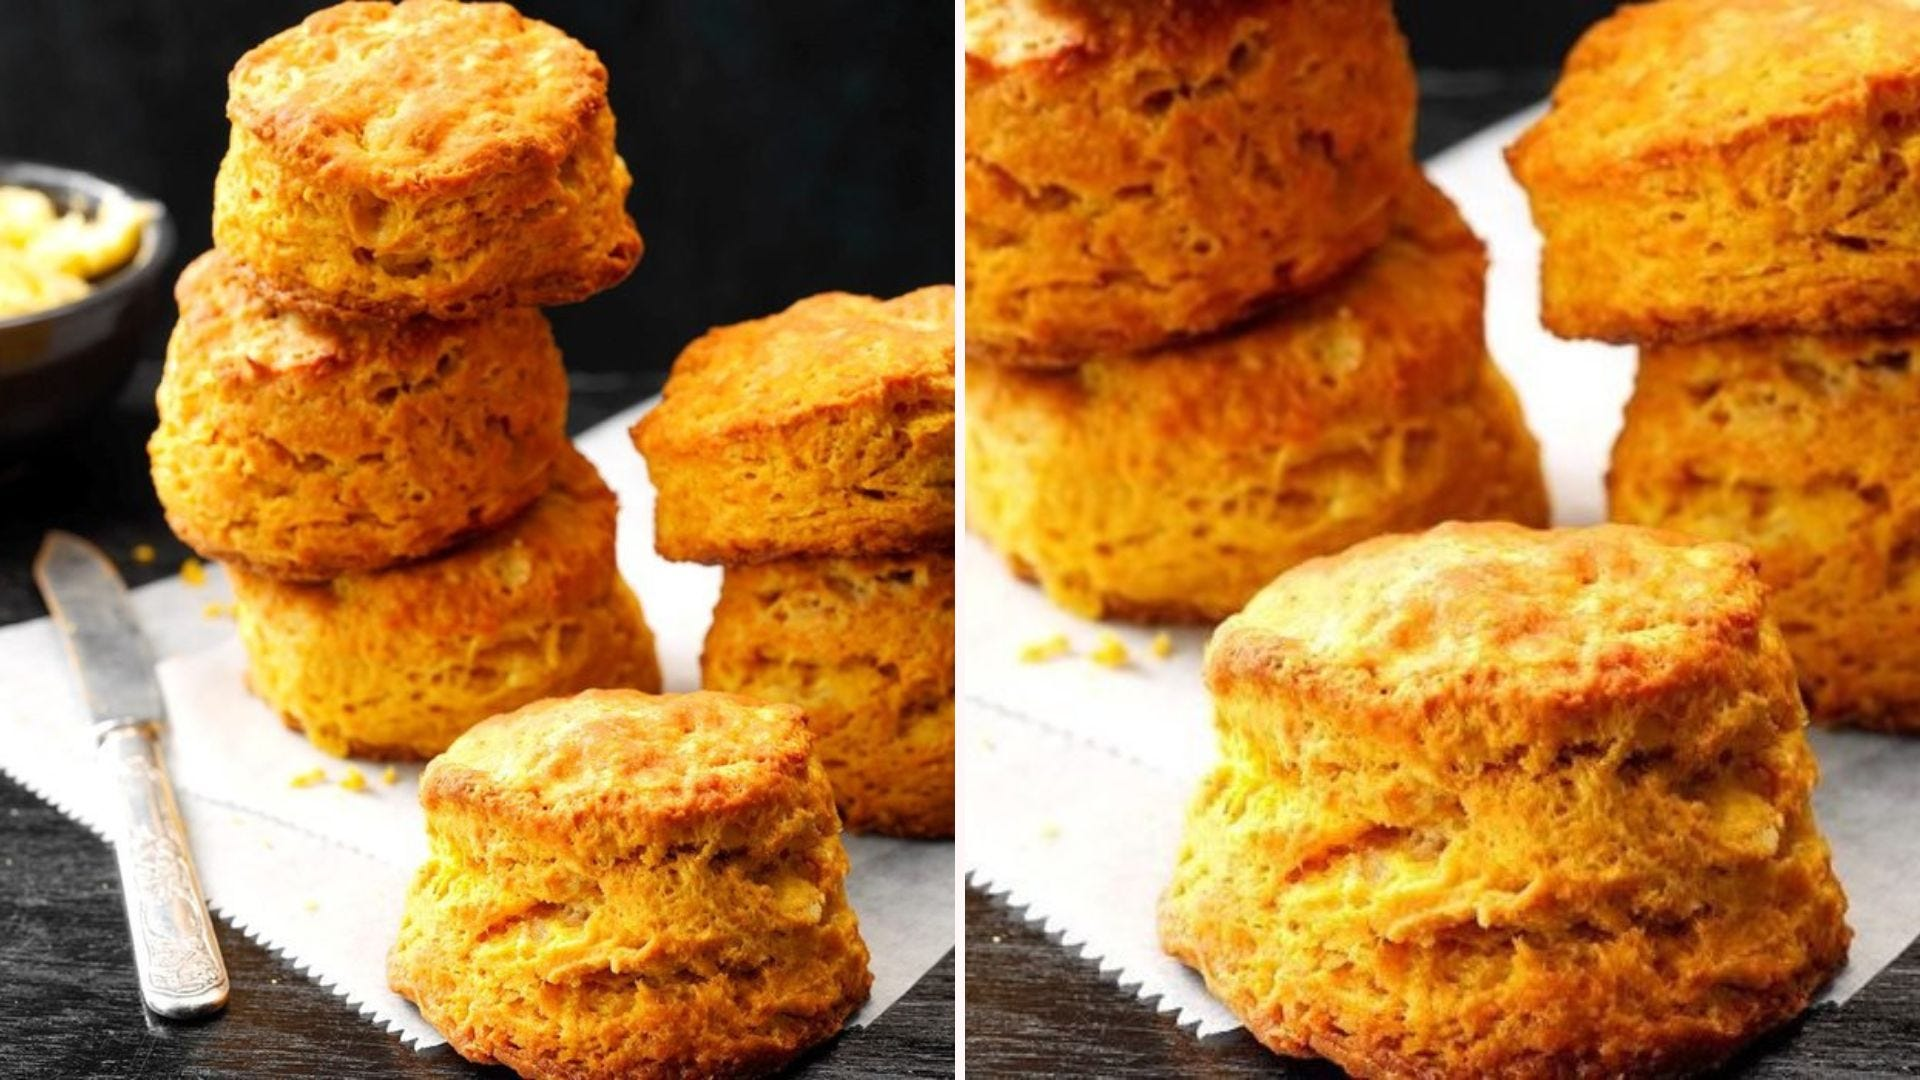 Stacks of pumpkin buttermilk biscuits on parchment paper on a countertop